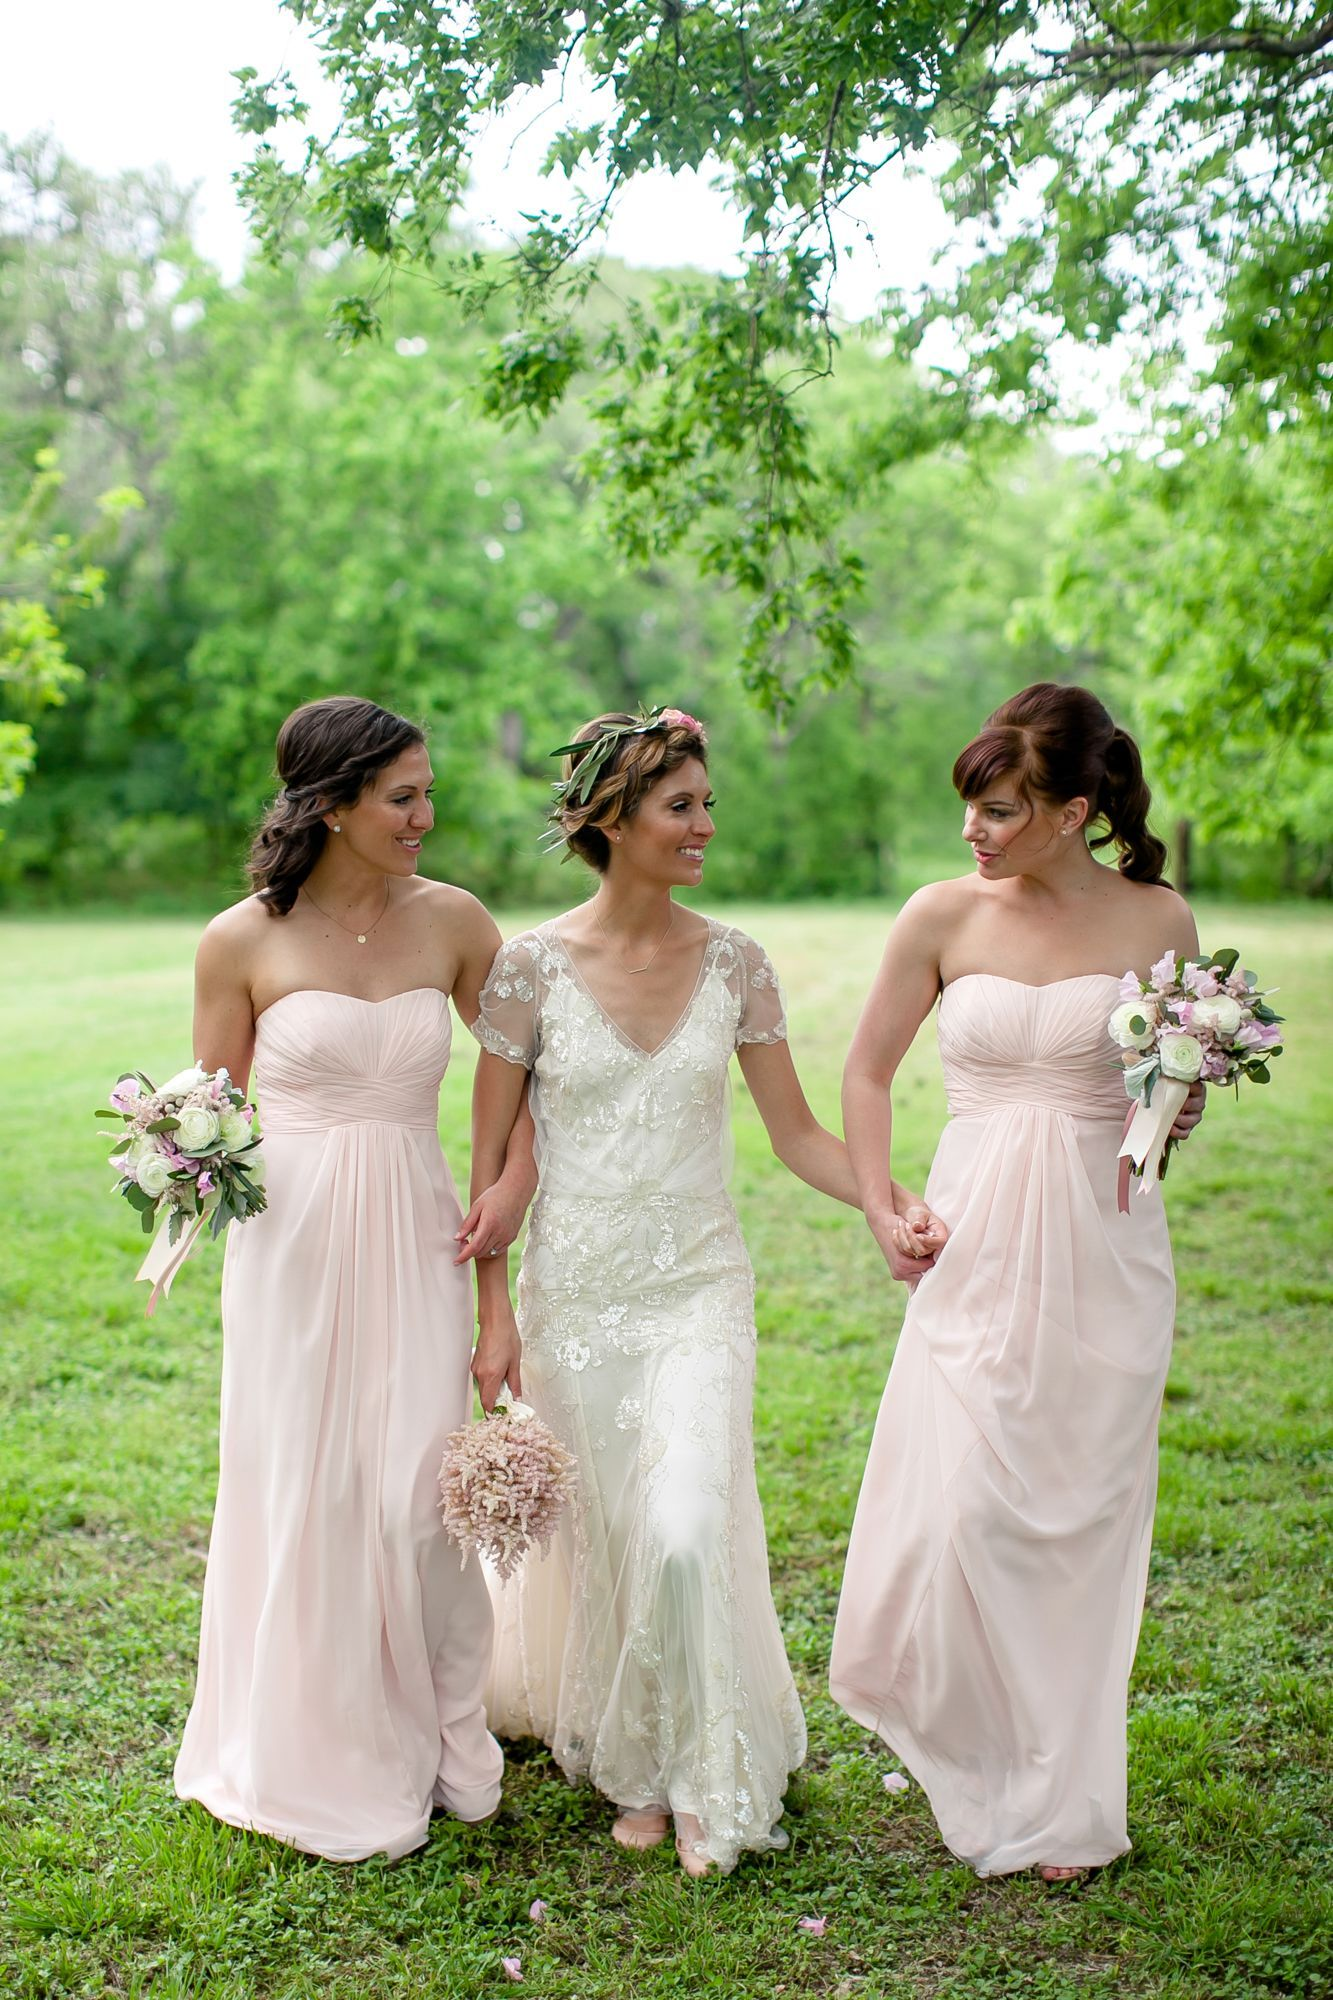 Strapless Pale Blush Chiffon Bridesmaids Dresses